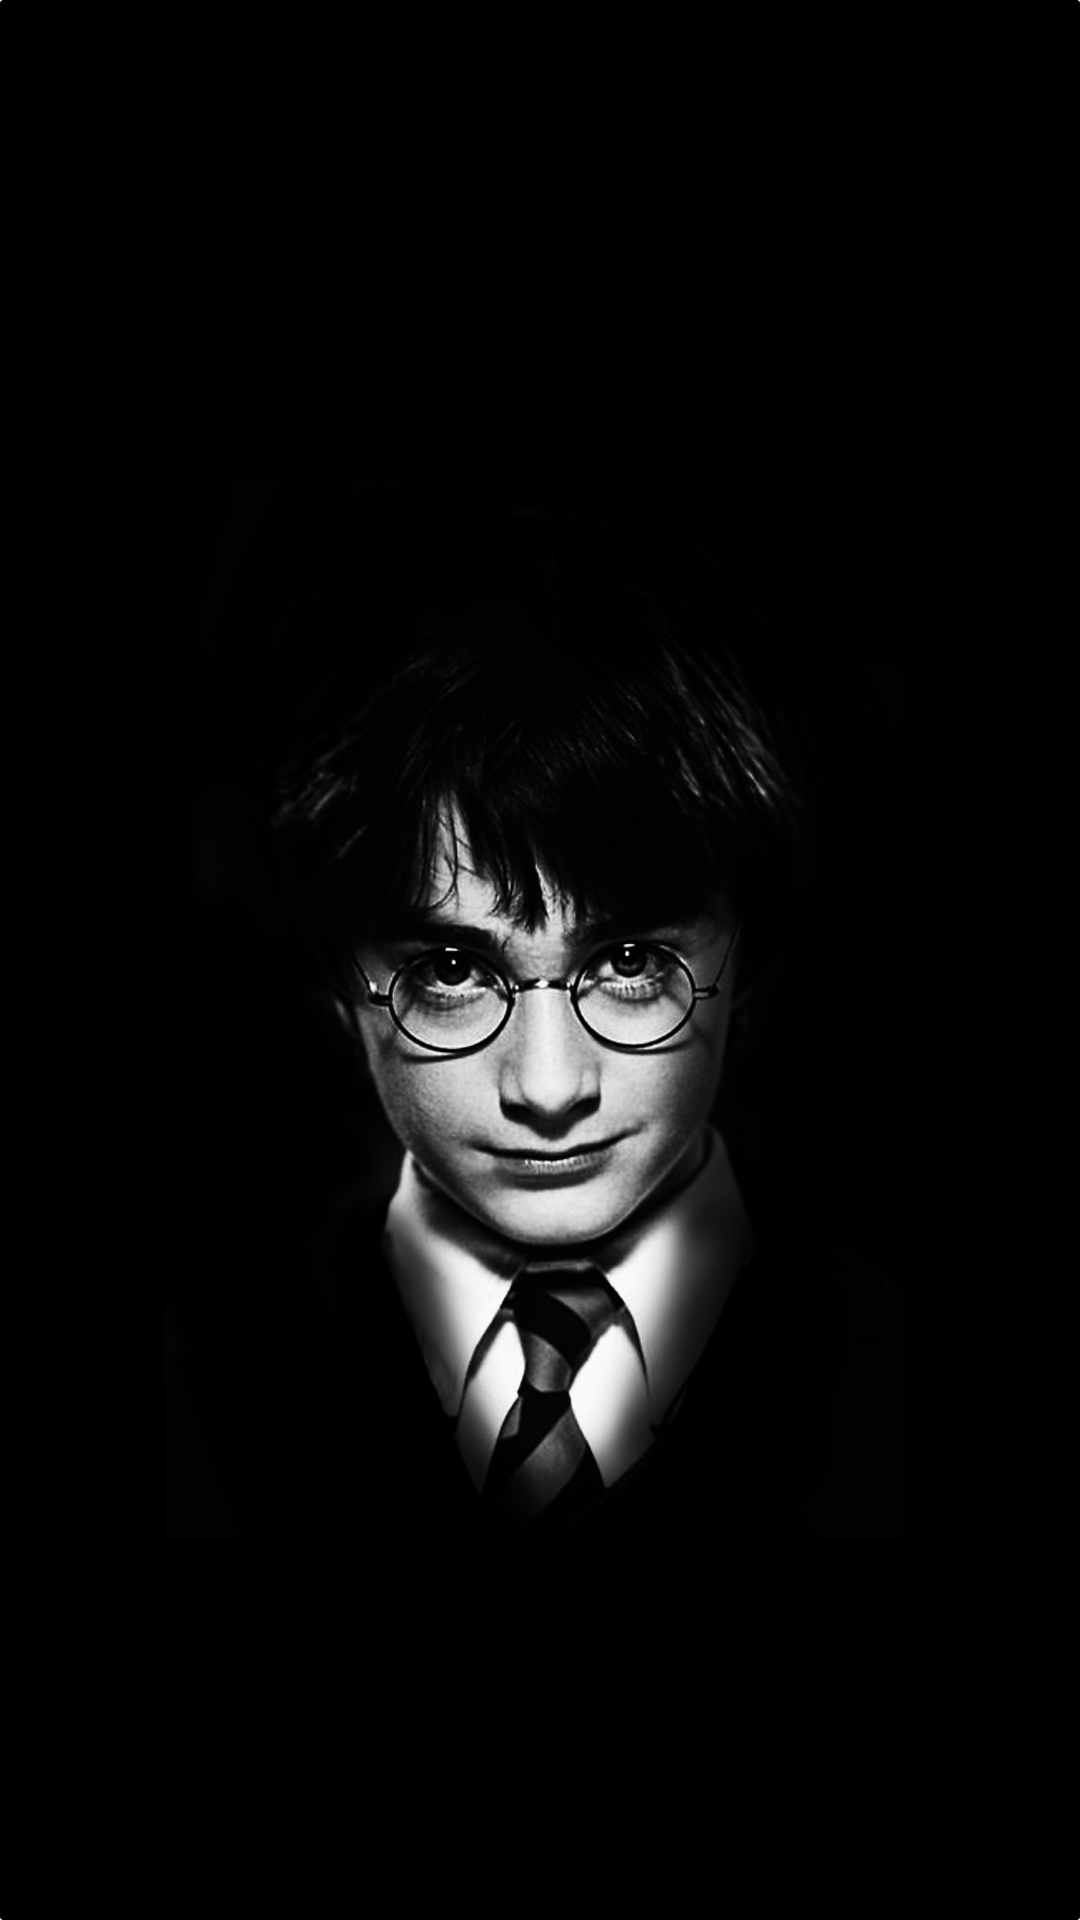 Good Wallpaper Harry Potter Iphone 6 - Harry-potter-2016-iphone-wallpaper  Image_373917.png